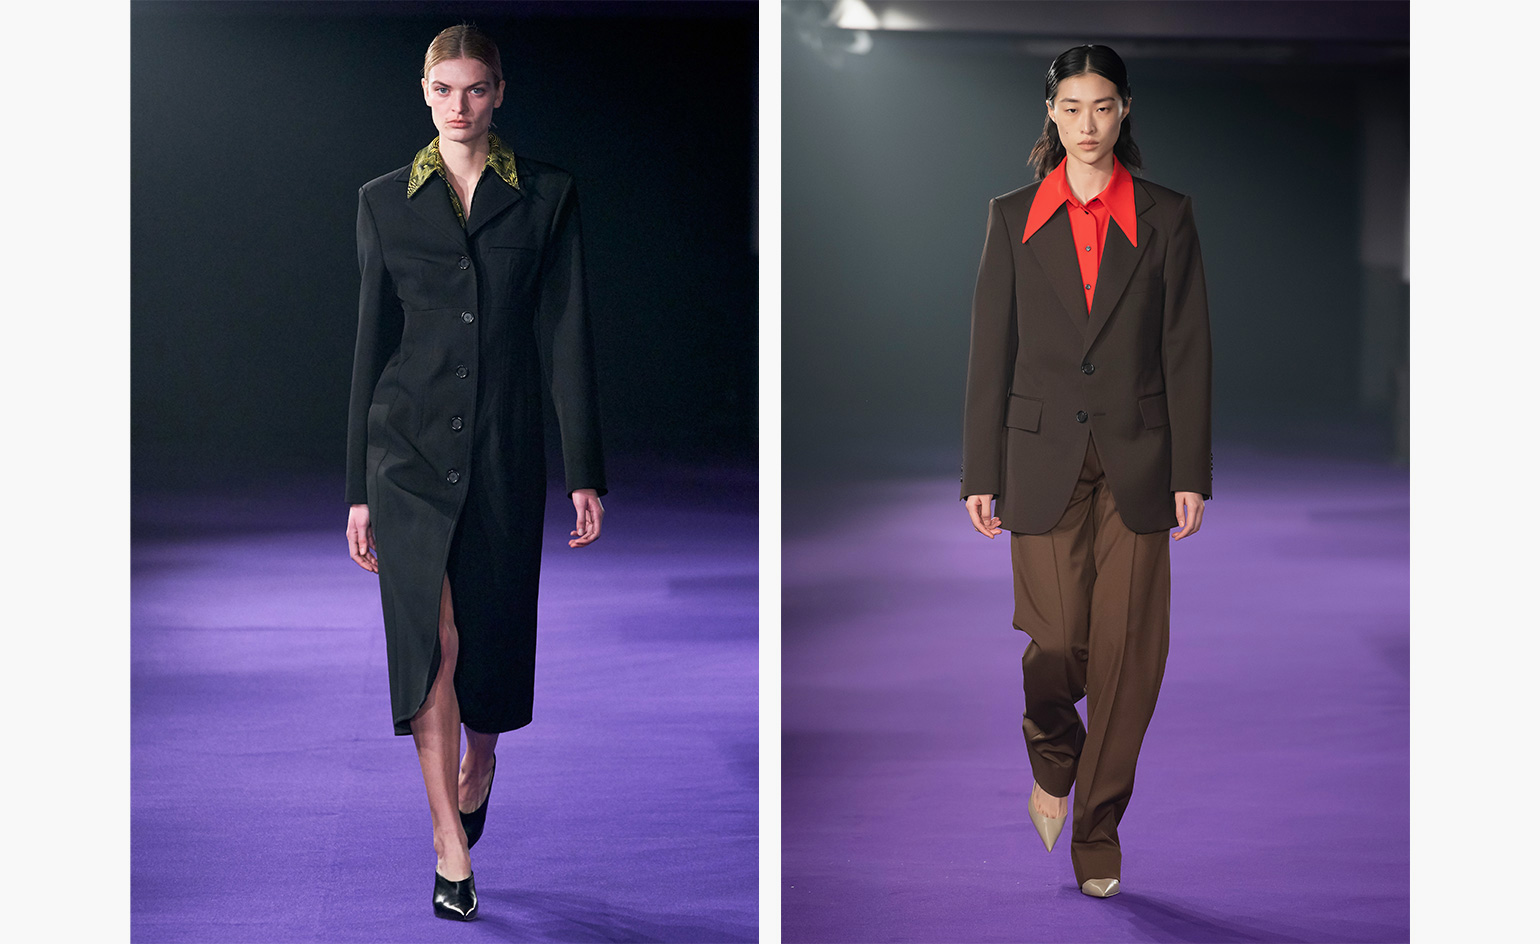 Kwaidan Editions A/W 2019 tailoring catwalk images